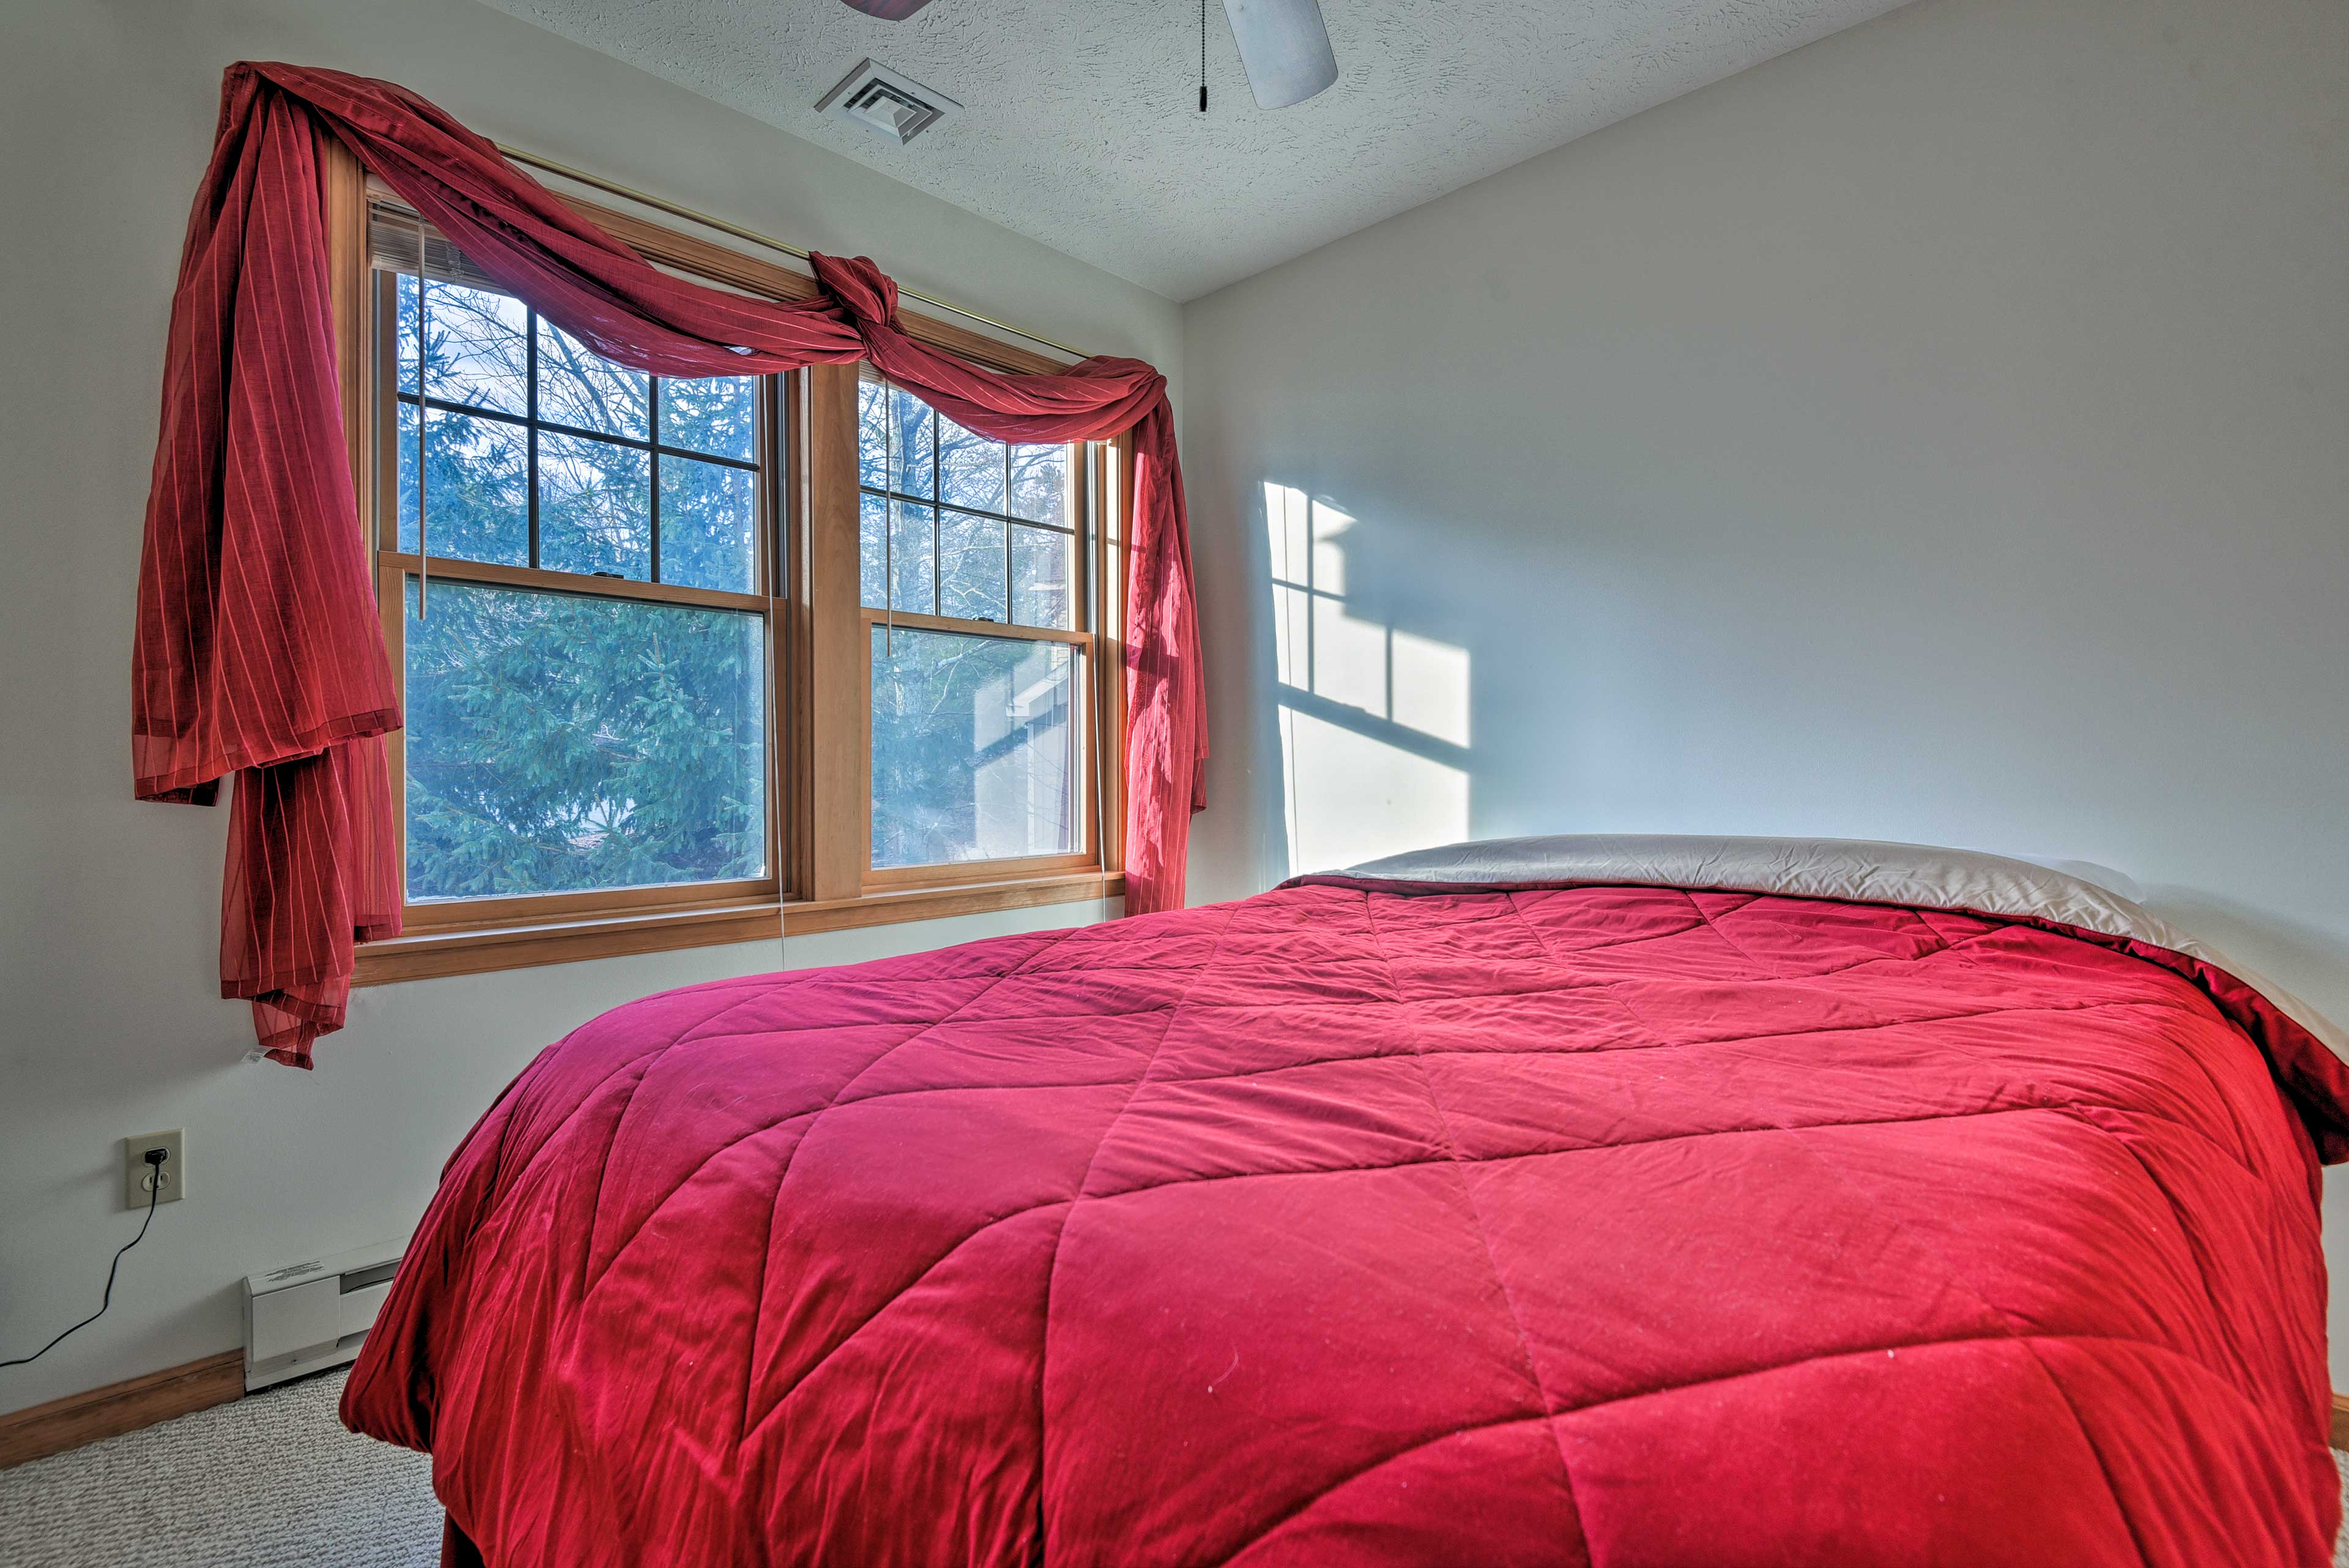 Rise and shine to ample natural sunlight entering the bedroom.